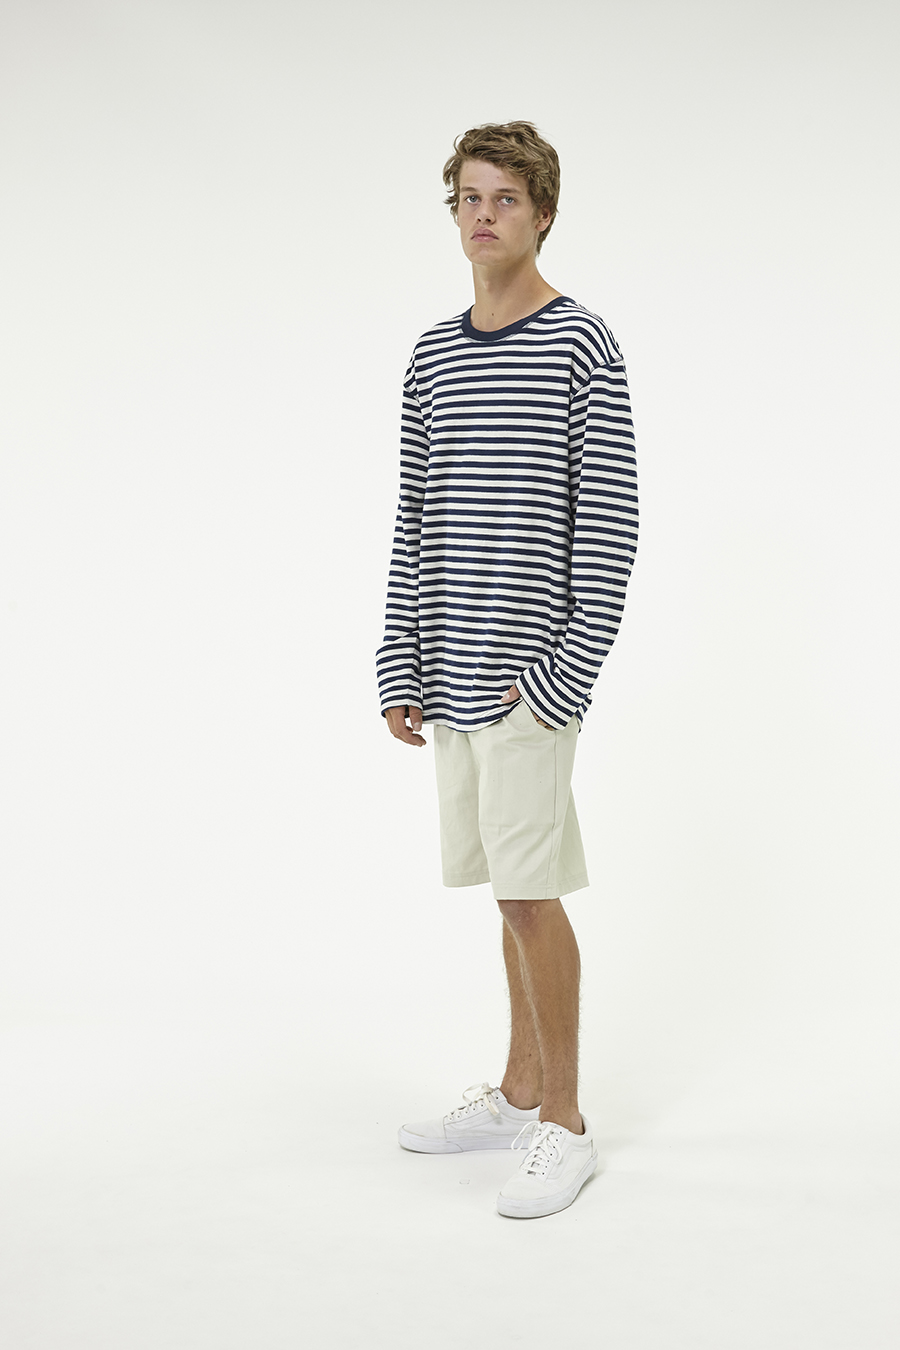 Huffer_Q3-16_M-Side-One-LS-Tee_Navy-04